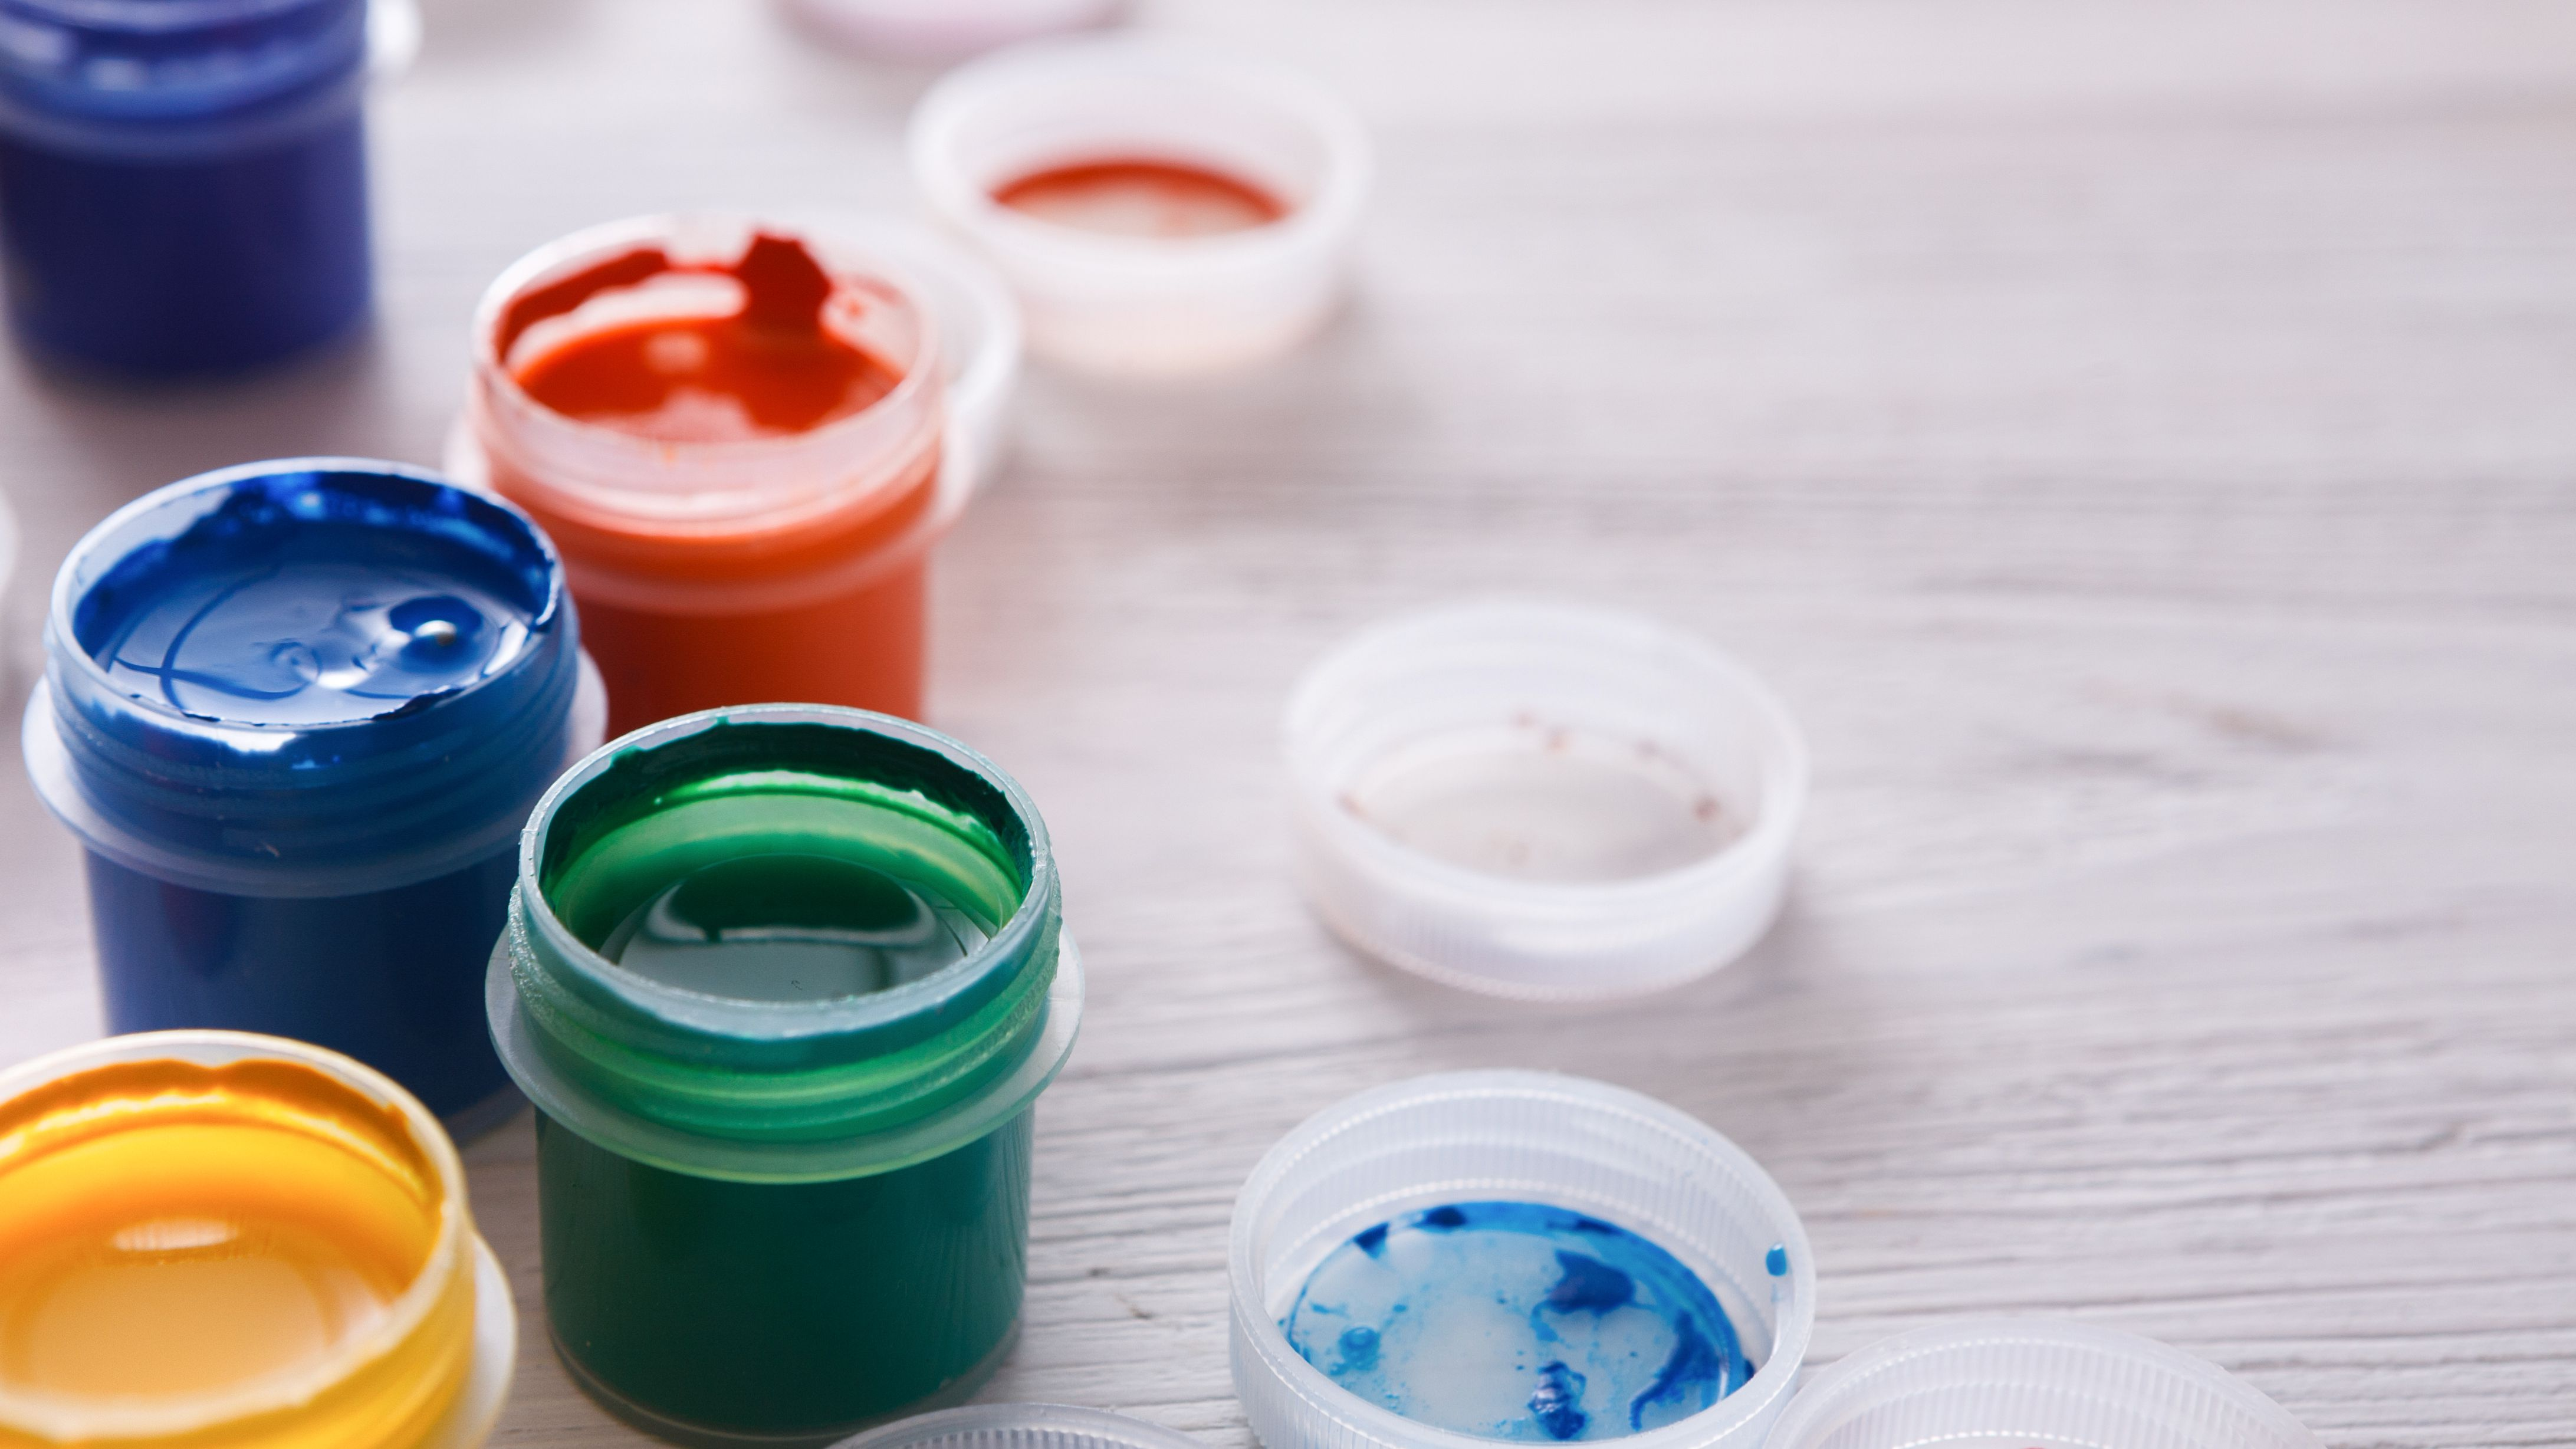 How To Thicken Up Acrylic Paint